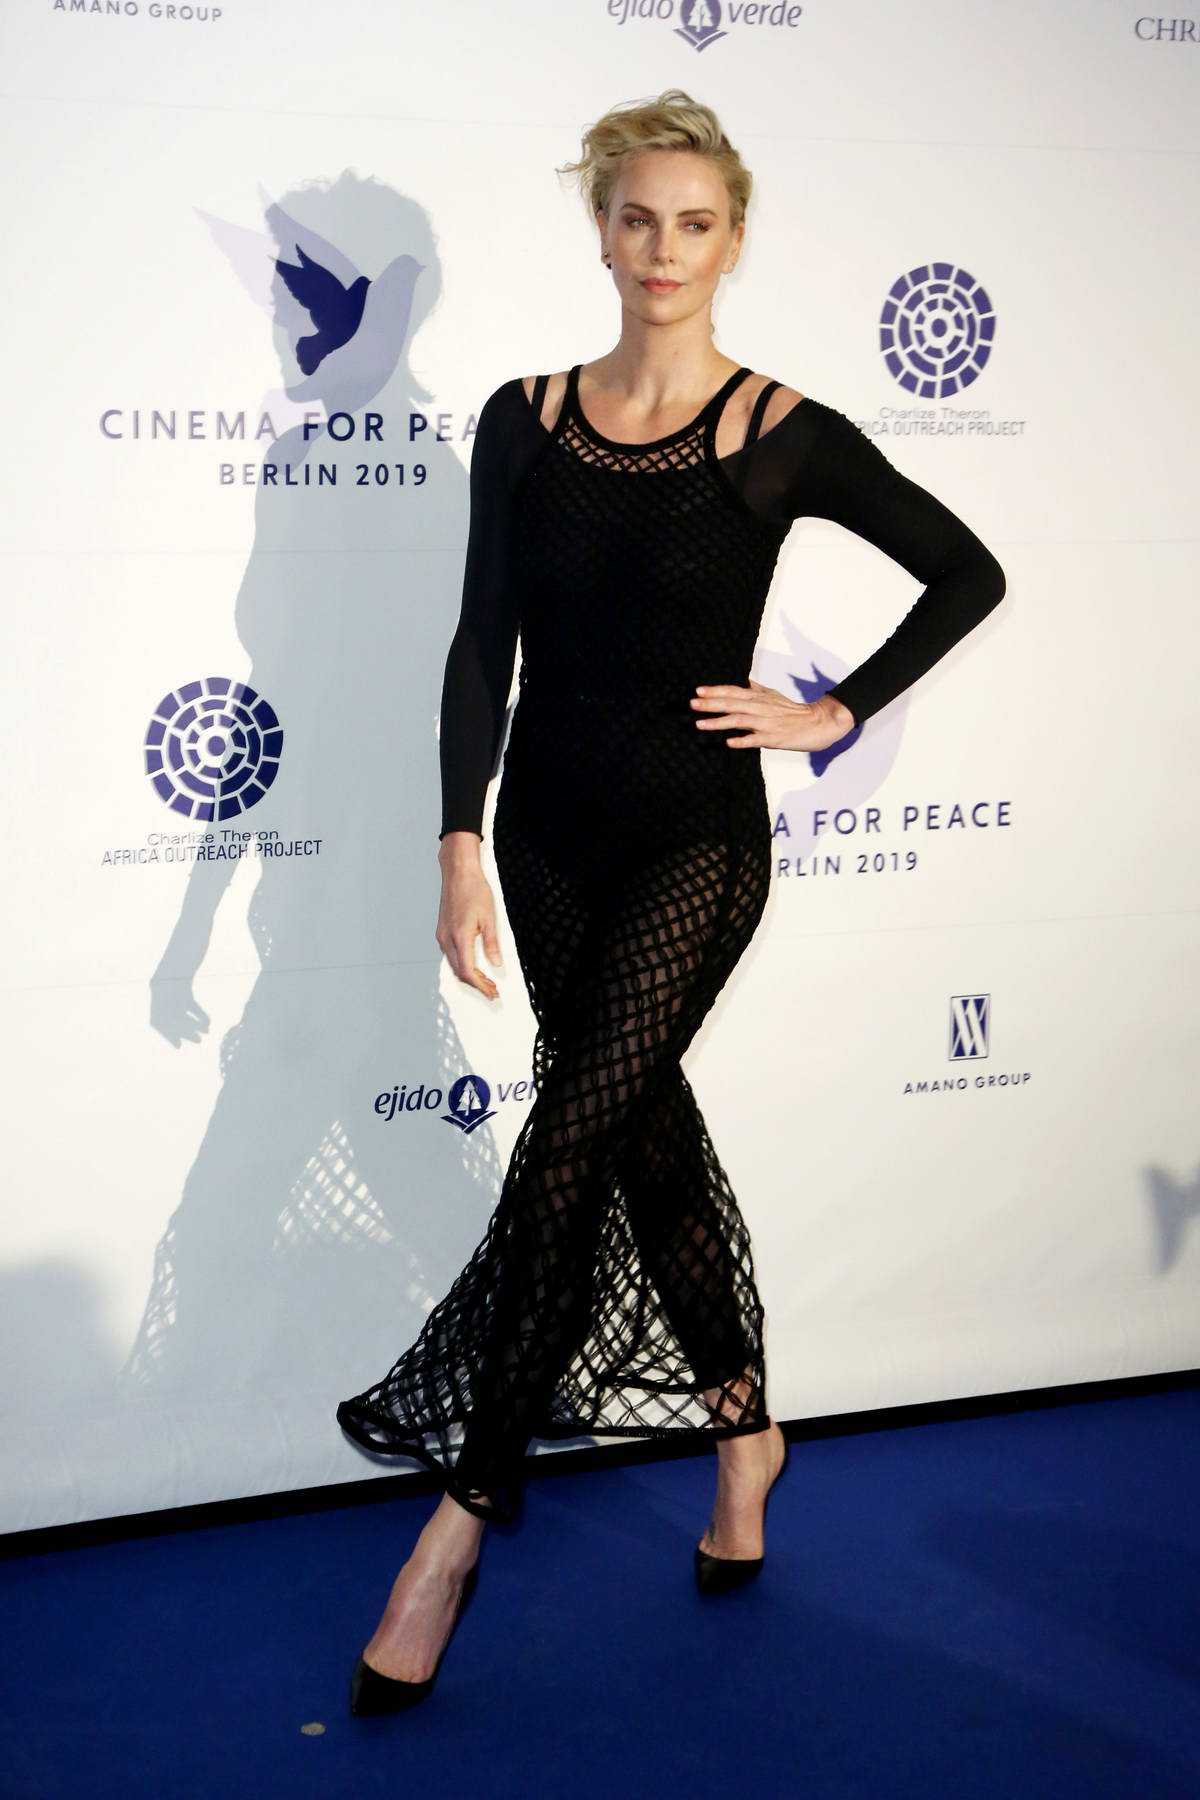 Charlize Theron attends the Cinema For Peace International Committee & Nominee Dinner in Berlin, Germany